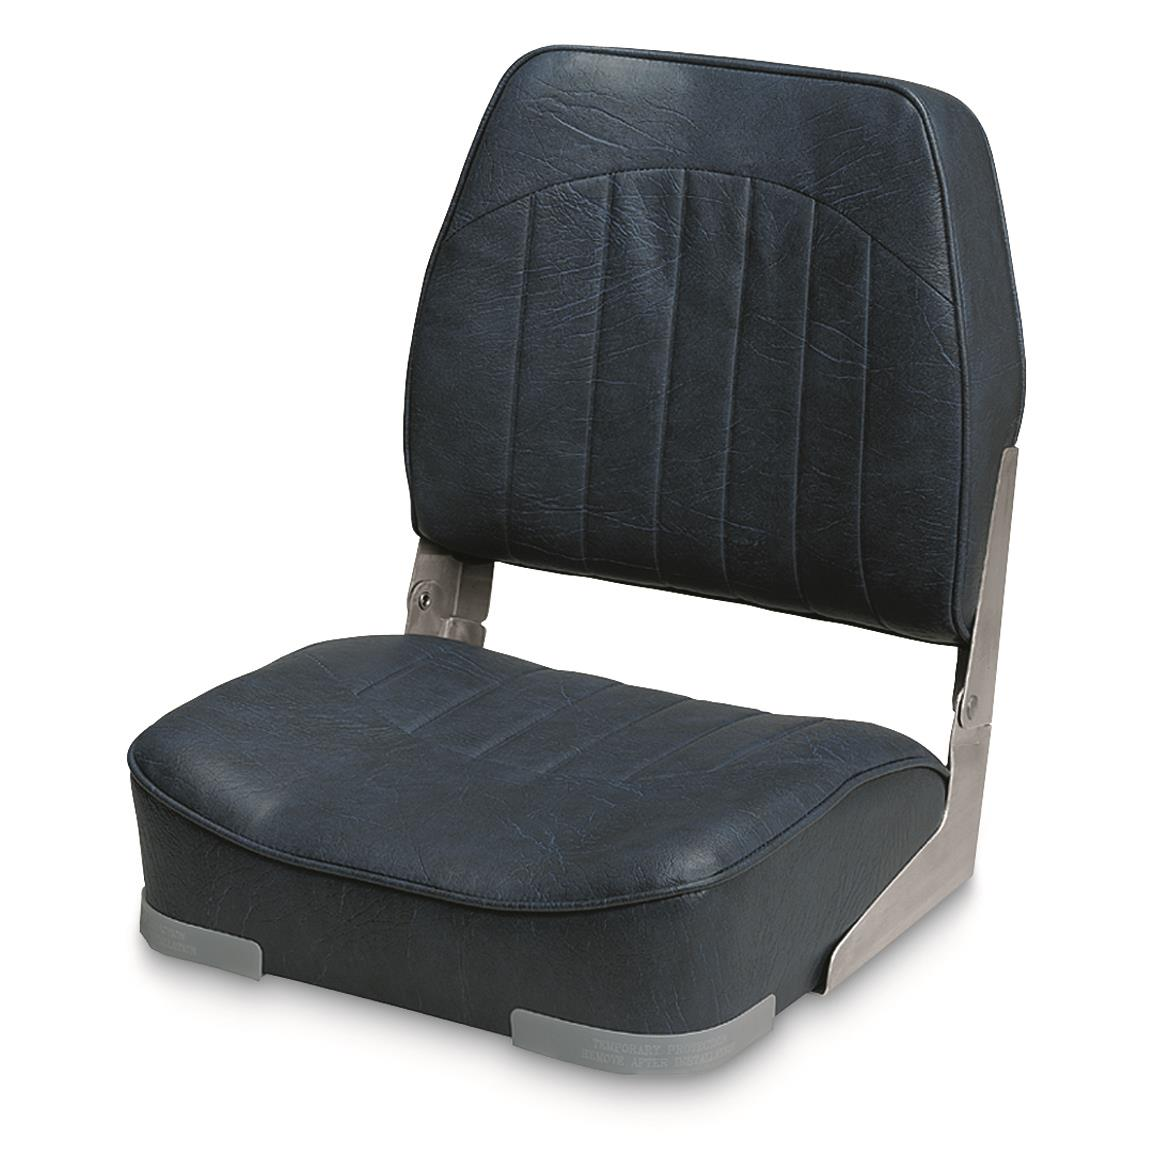 Wise Low - back Economy Fishing Boat Seat, Navy